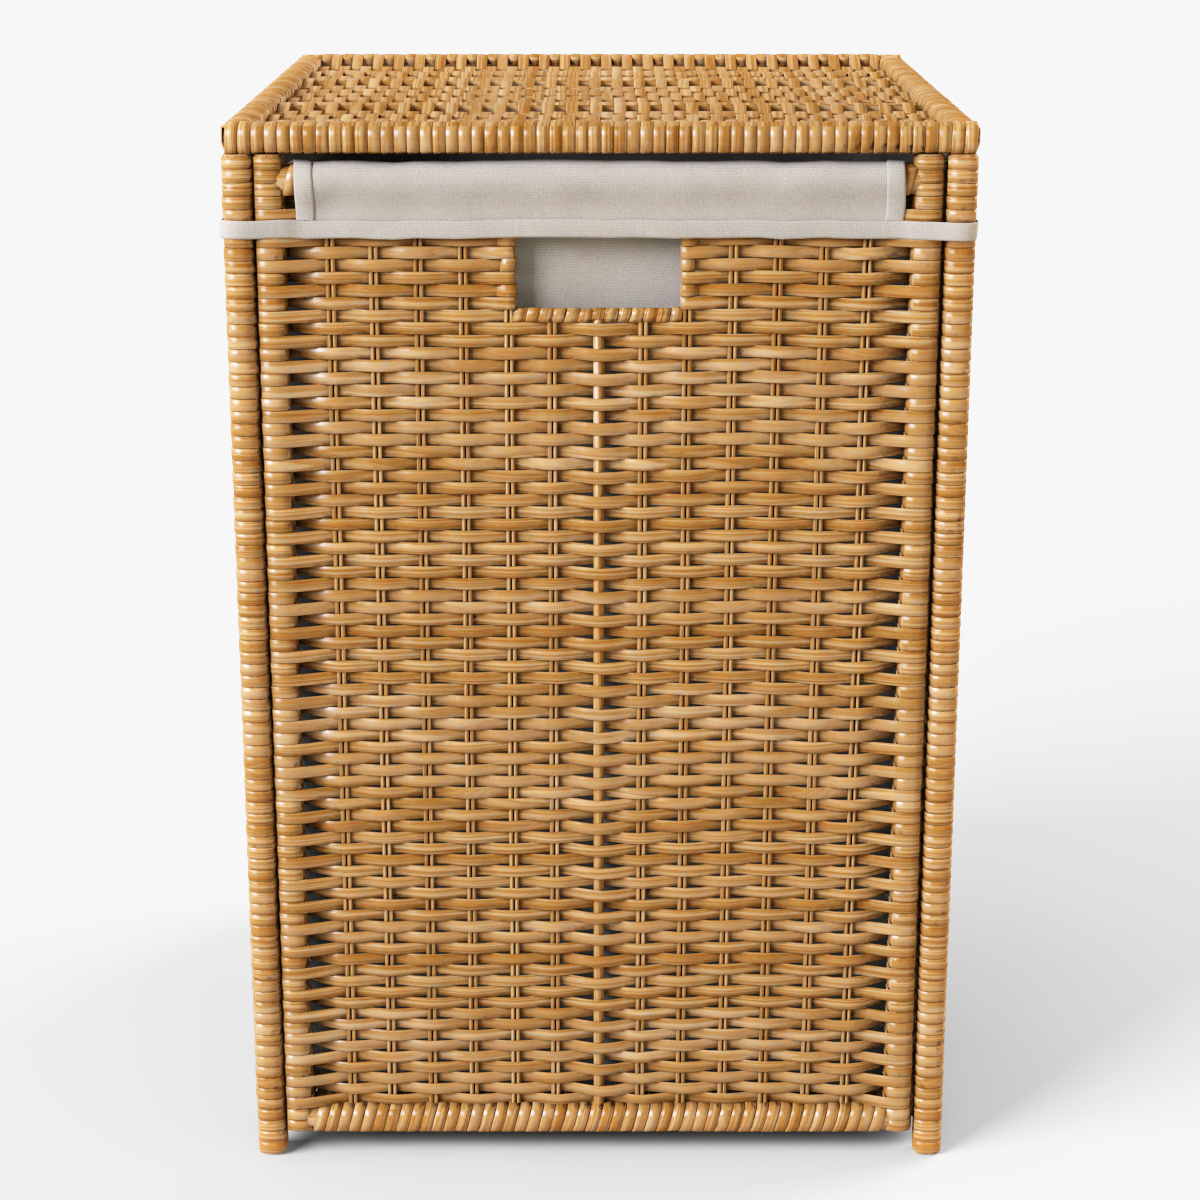 Laundry Basket Ikea Branas   3DOcean Item for Sale  01 preview jpg  02 preview jpg 03 preview jpg. Laundry Basket Ikea Branas by Markelos   3DOcean